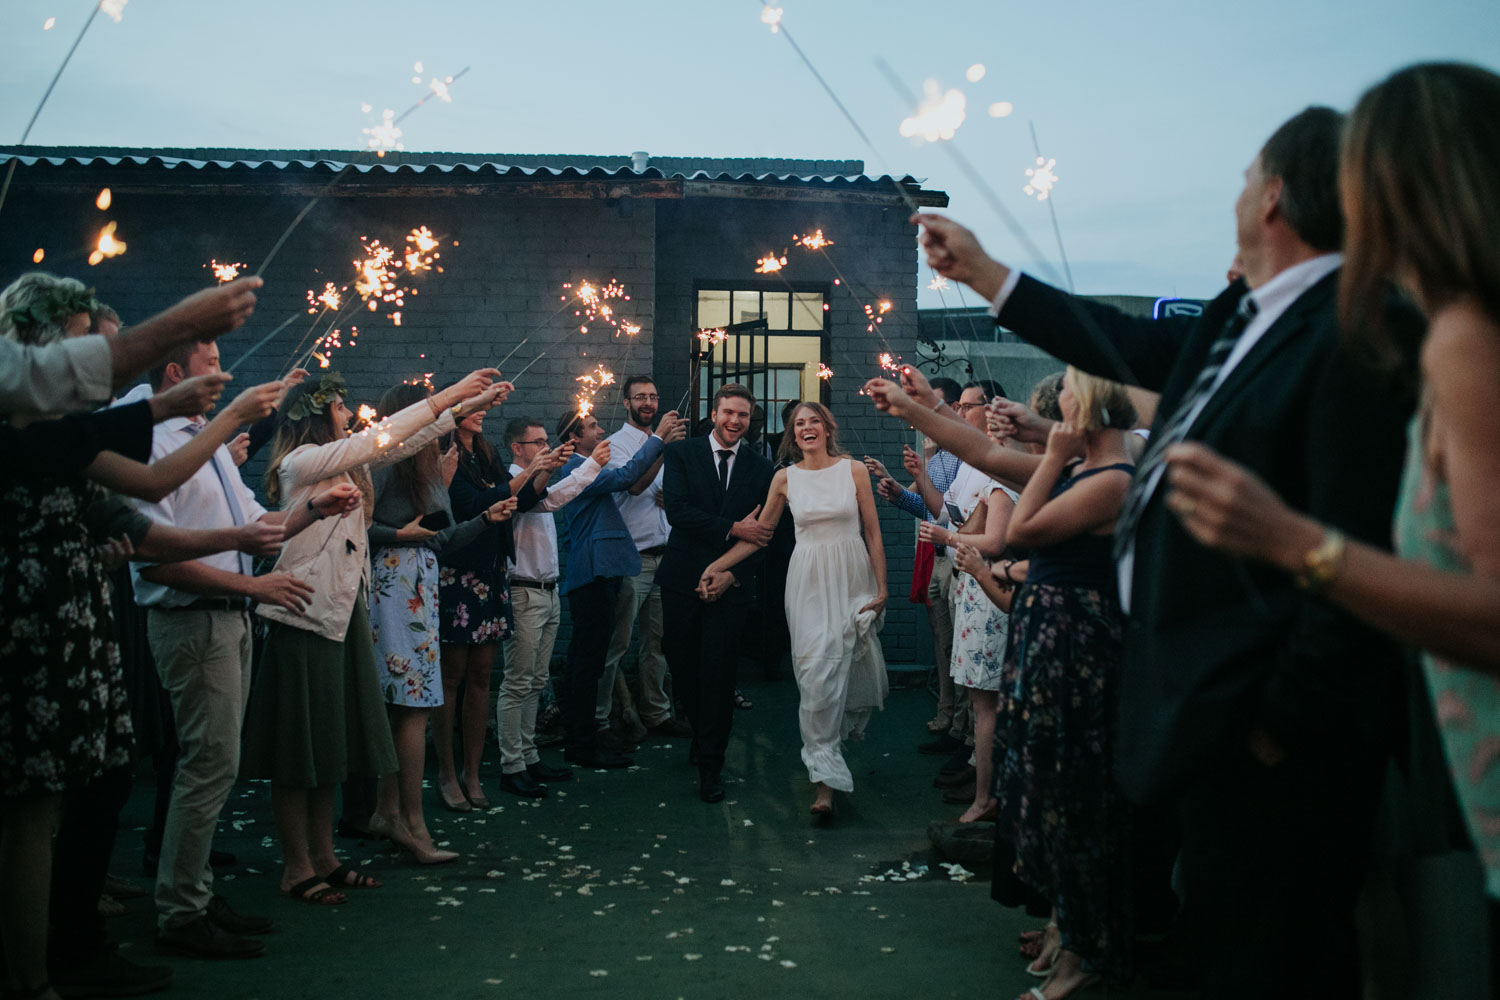 Sparkler Entrance Tunnel Wedding Photo Idea